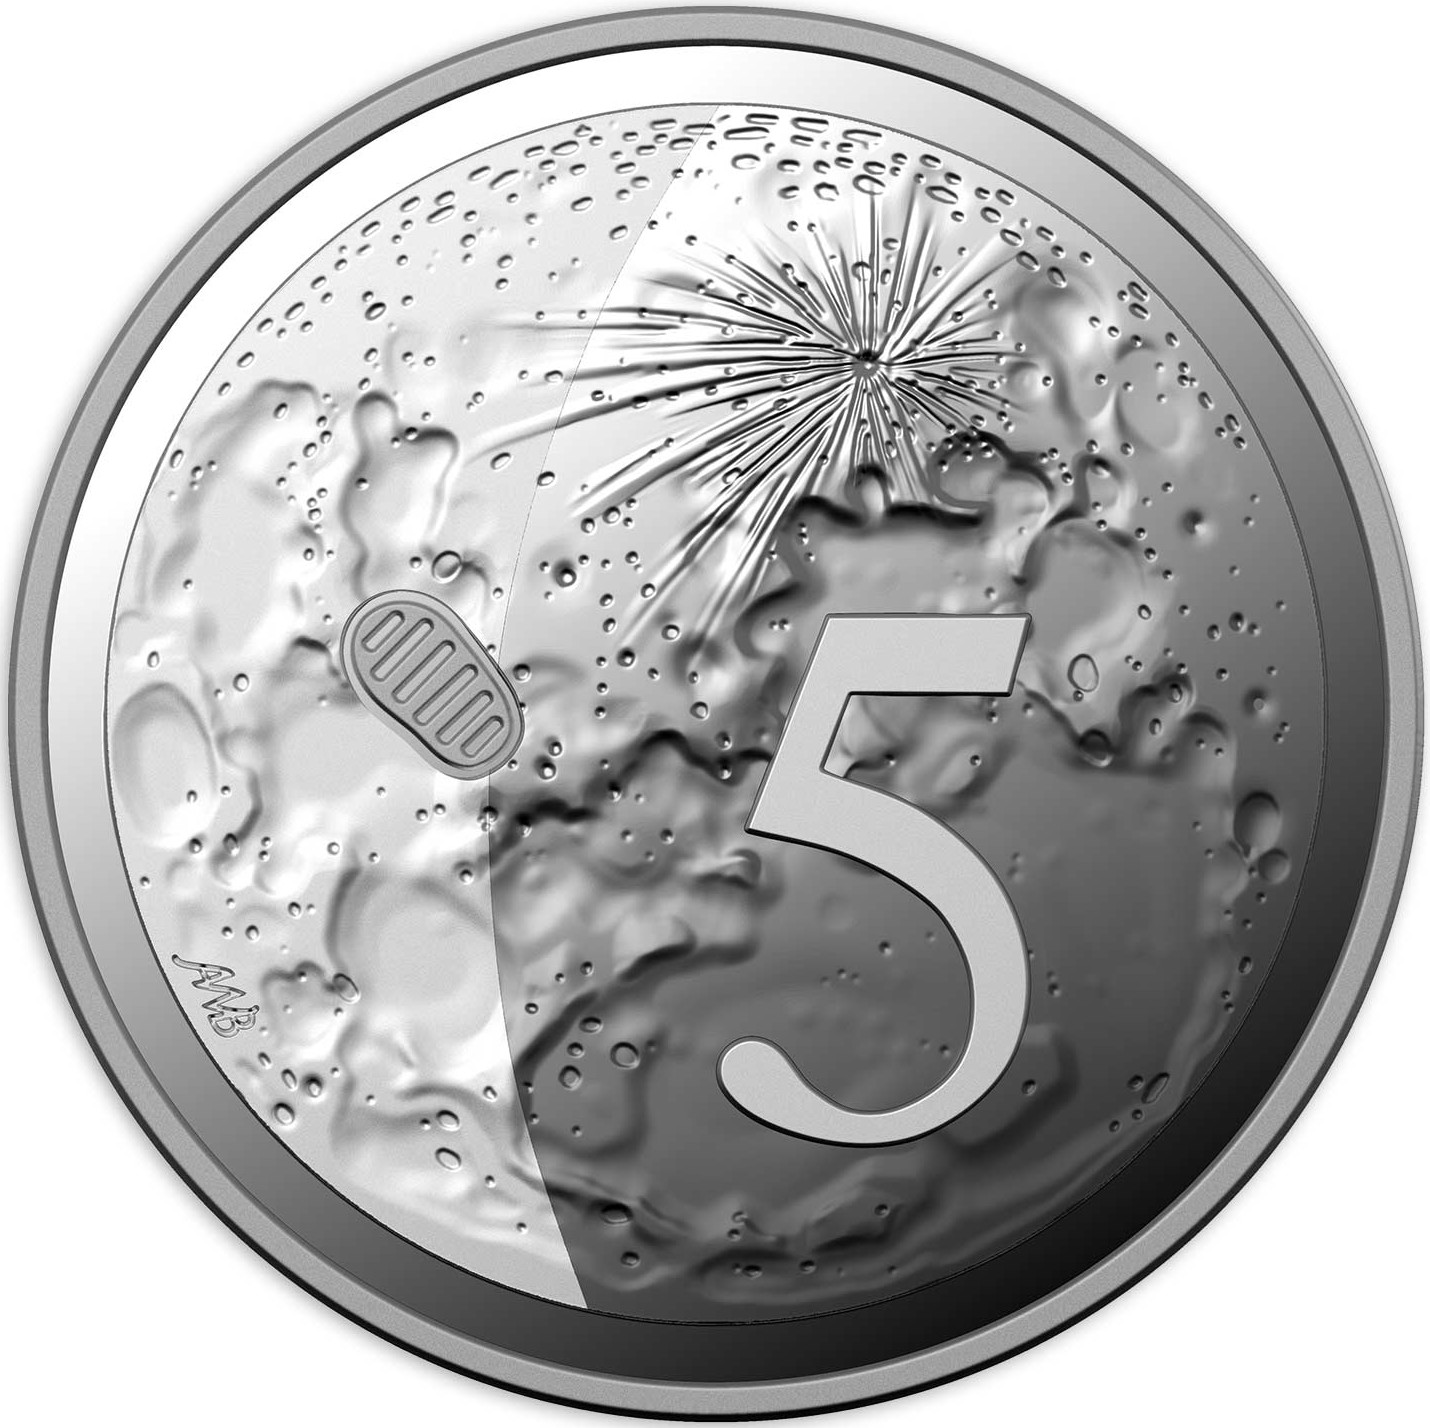 Five Cents 2019 Moon Landing (NCLT): Photo 50th Anniversary of the Moon Landing - 5 Cents Proof